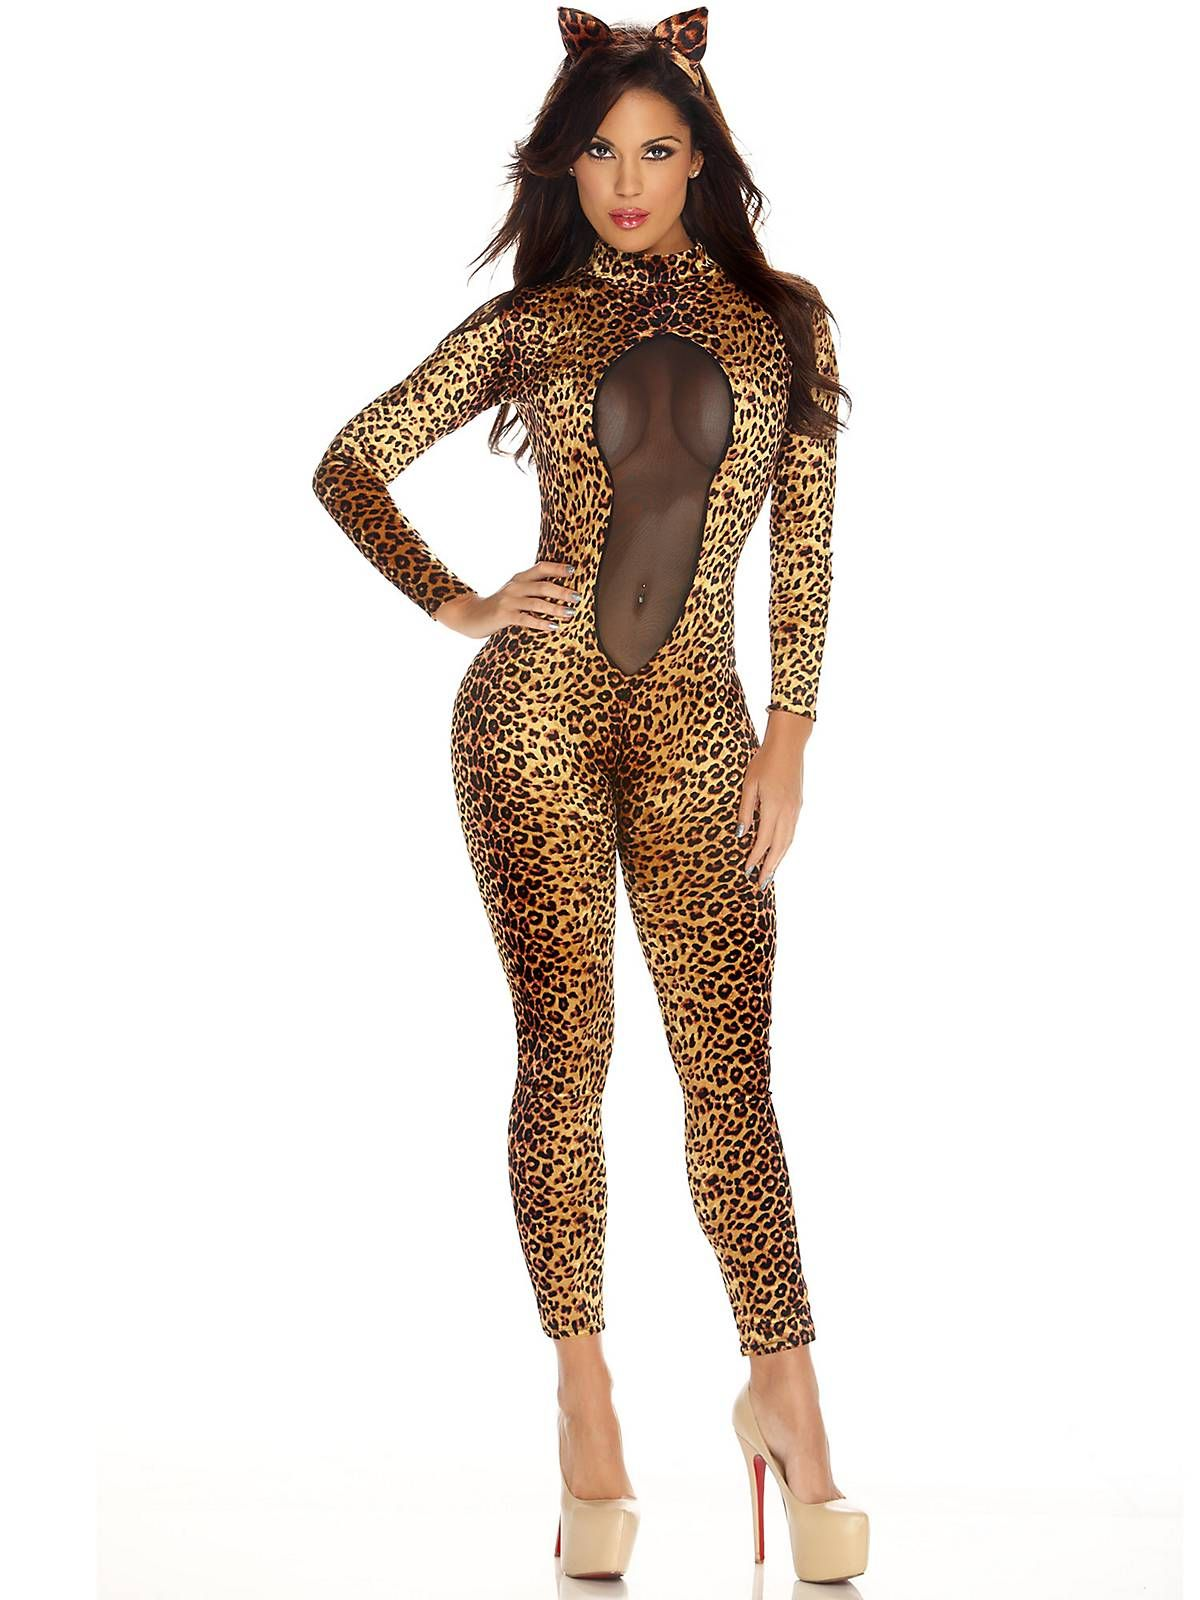 0d77a0f1c125 Sexy Women's Kitty Kat Costume | Costumes | Sexy cat costume ...